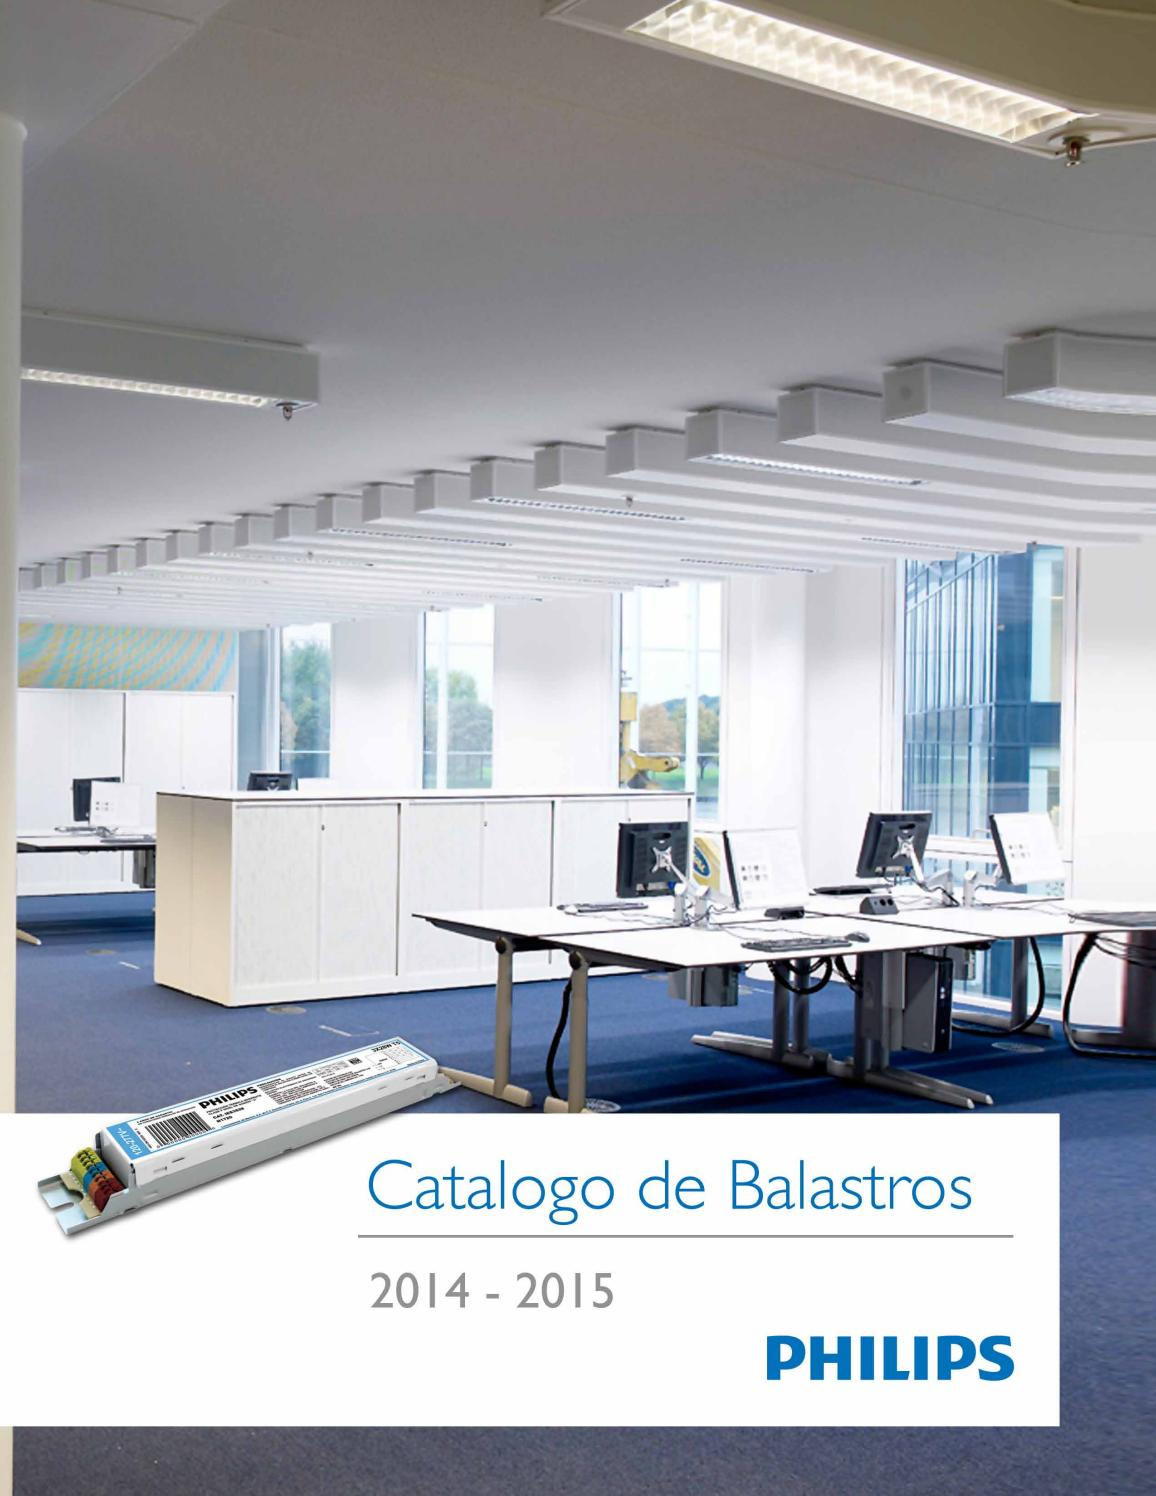 Catalogo Lamparas Philips Catálogo De Balastros By Philips Lighting Issuu